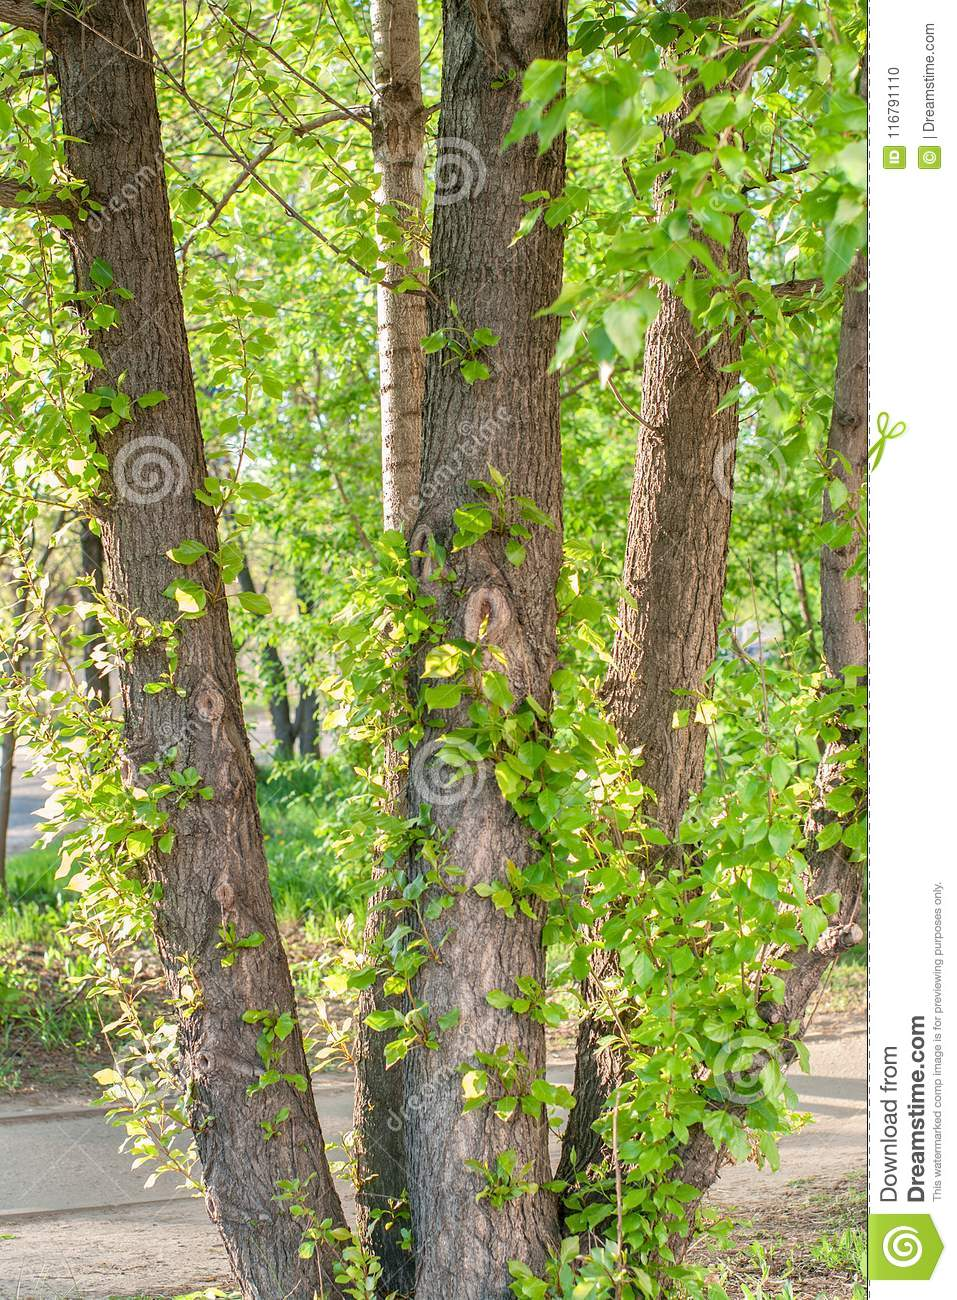 Young branches with green sunlit leaves on old poplar tree trunk at summer sunny day in park